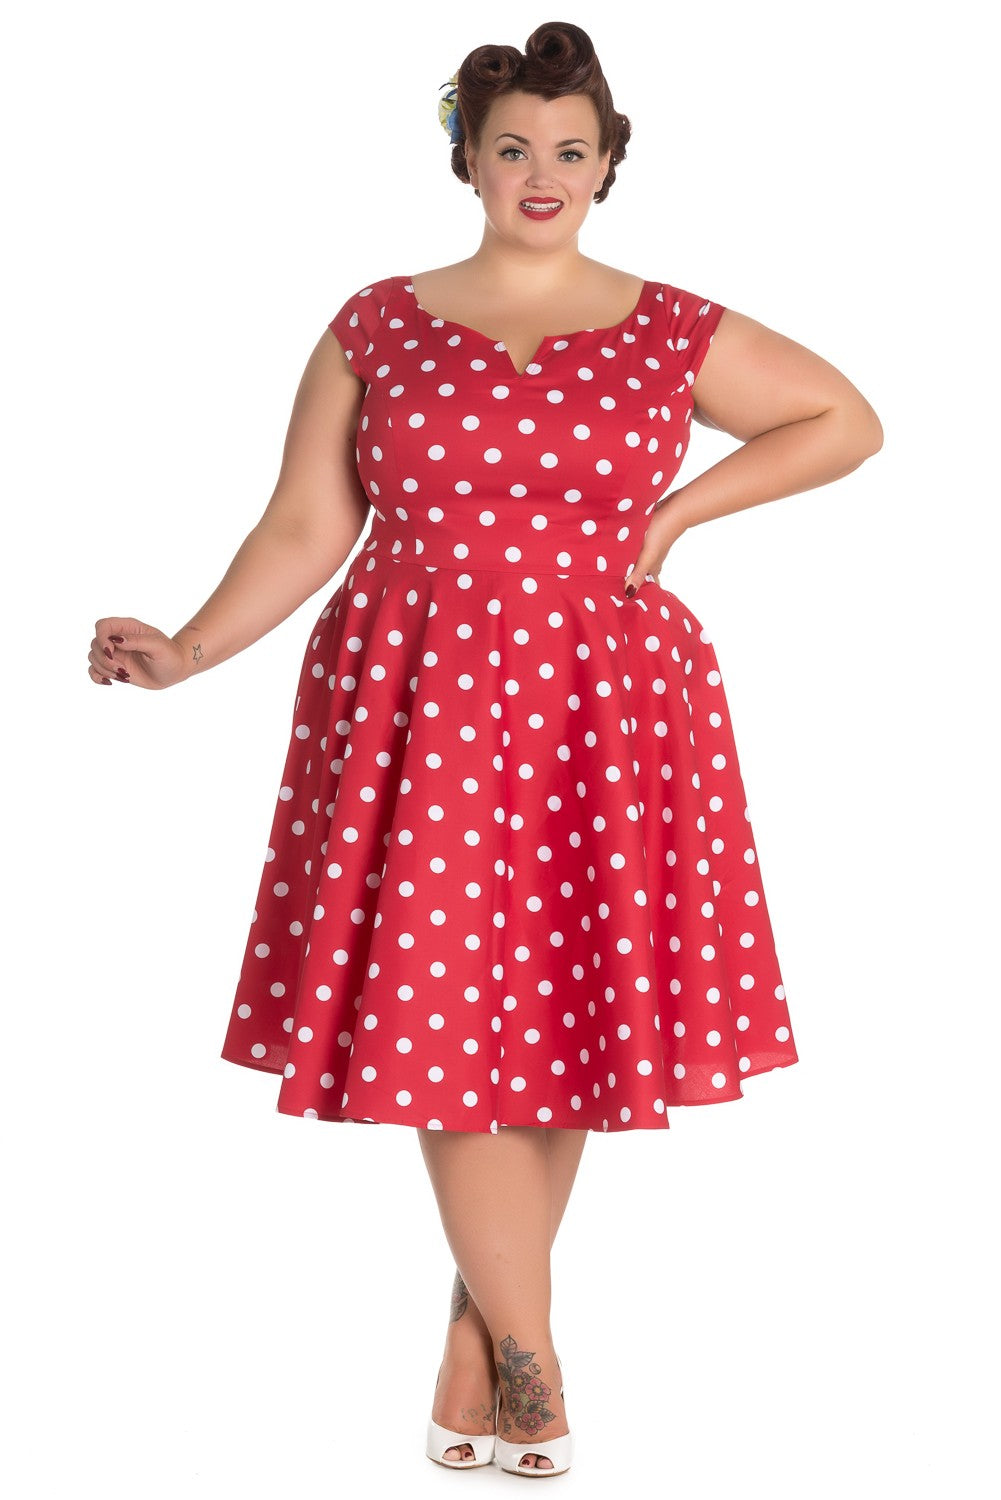 Beloved Endeavour Hell Bunny Nicky 50s 1950s Polkadot Red White Dress reproduction